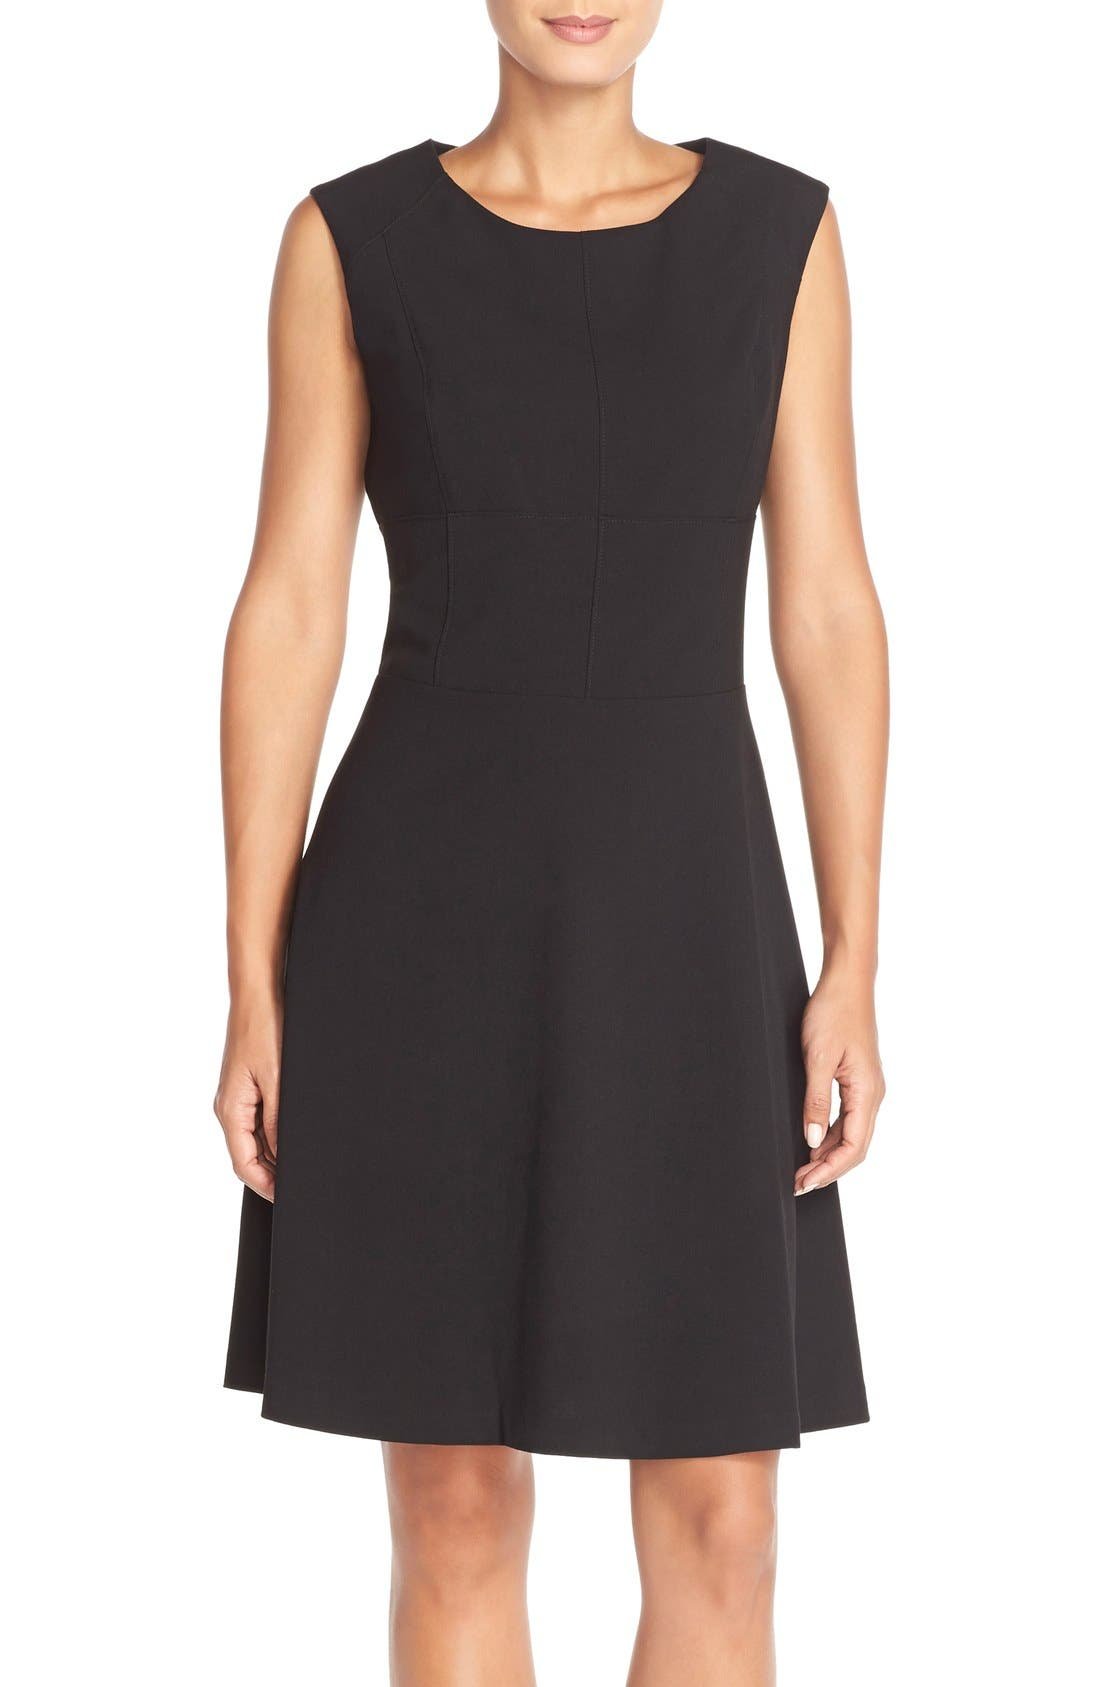 Alternate Image 1 Selected - Marc New York 'Lux' Stretch Fit & Flare Dress